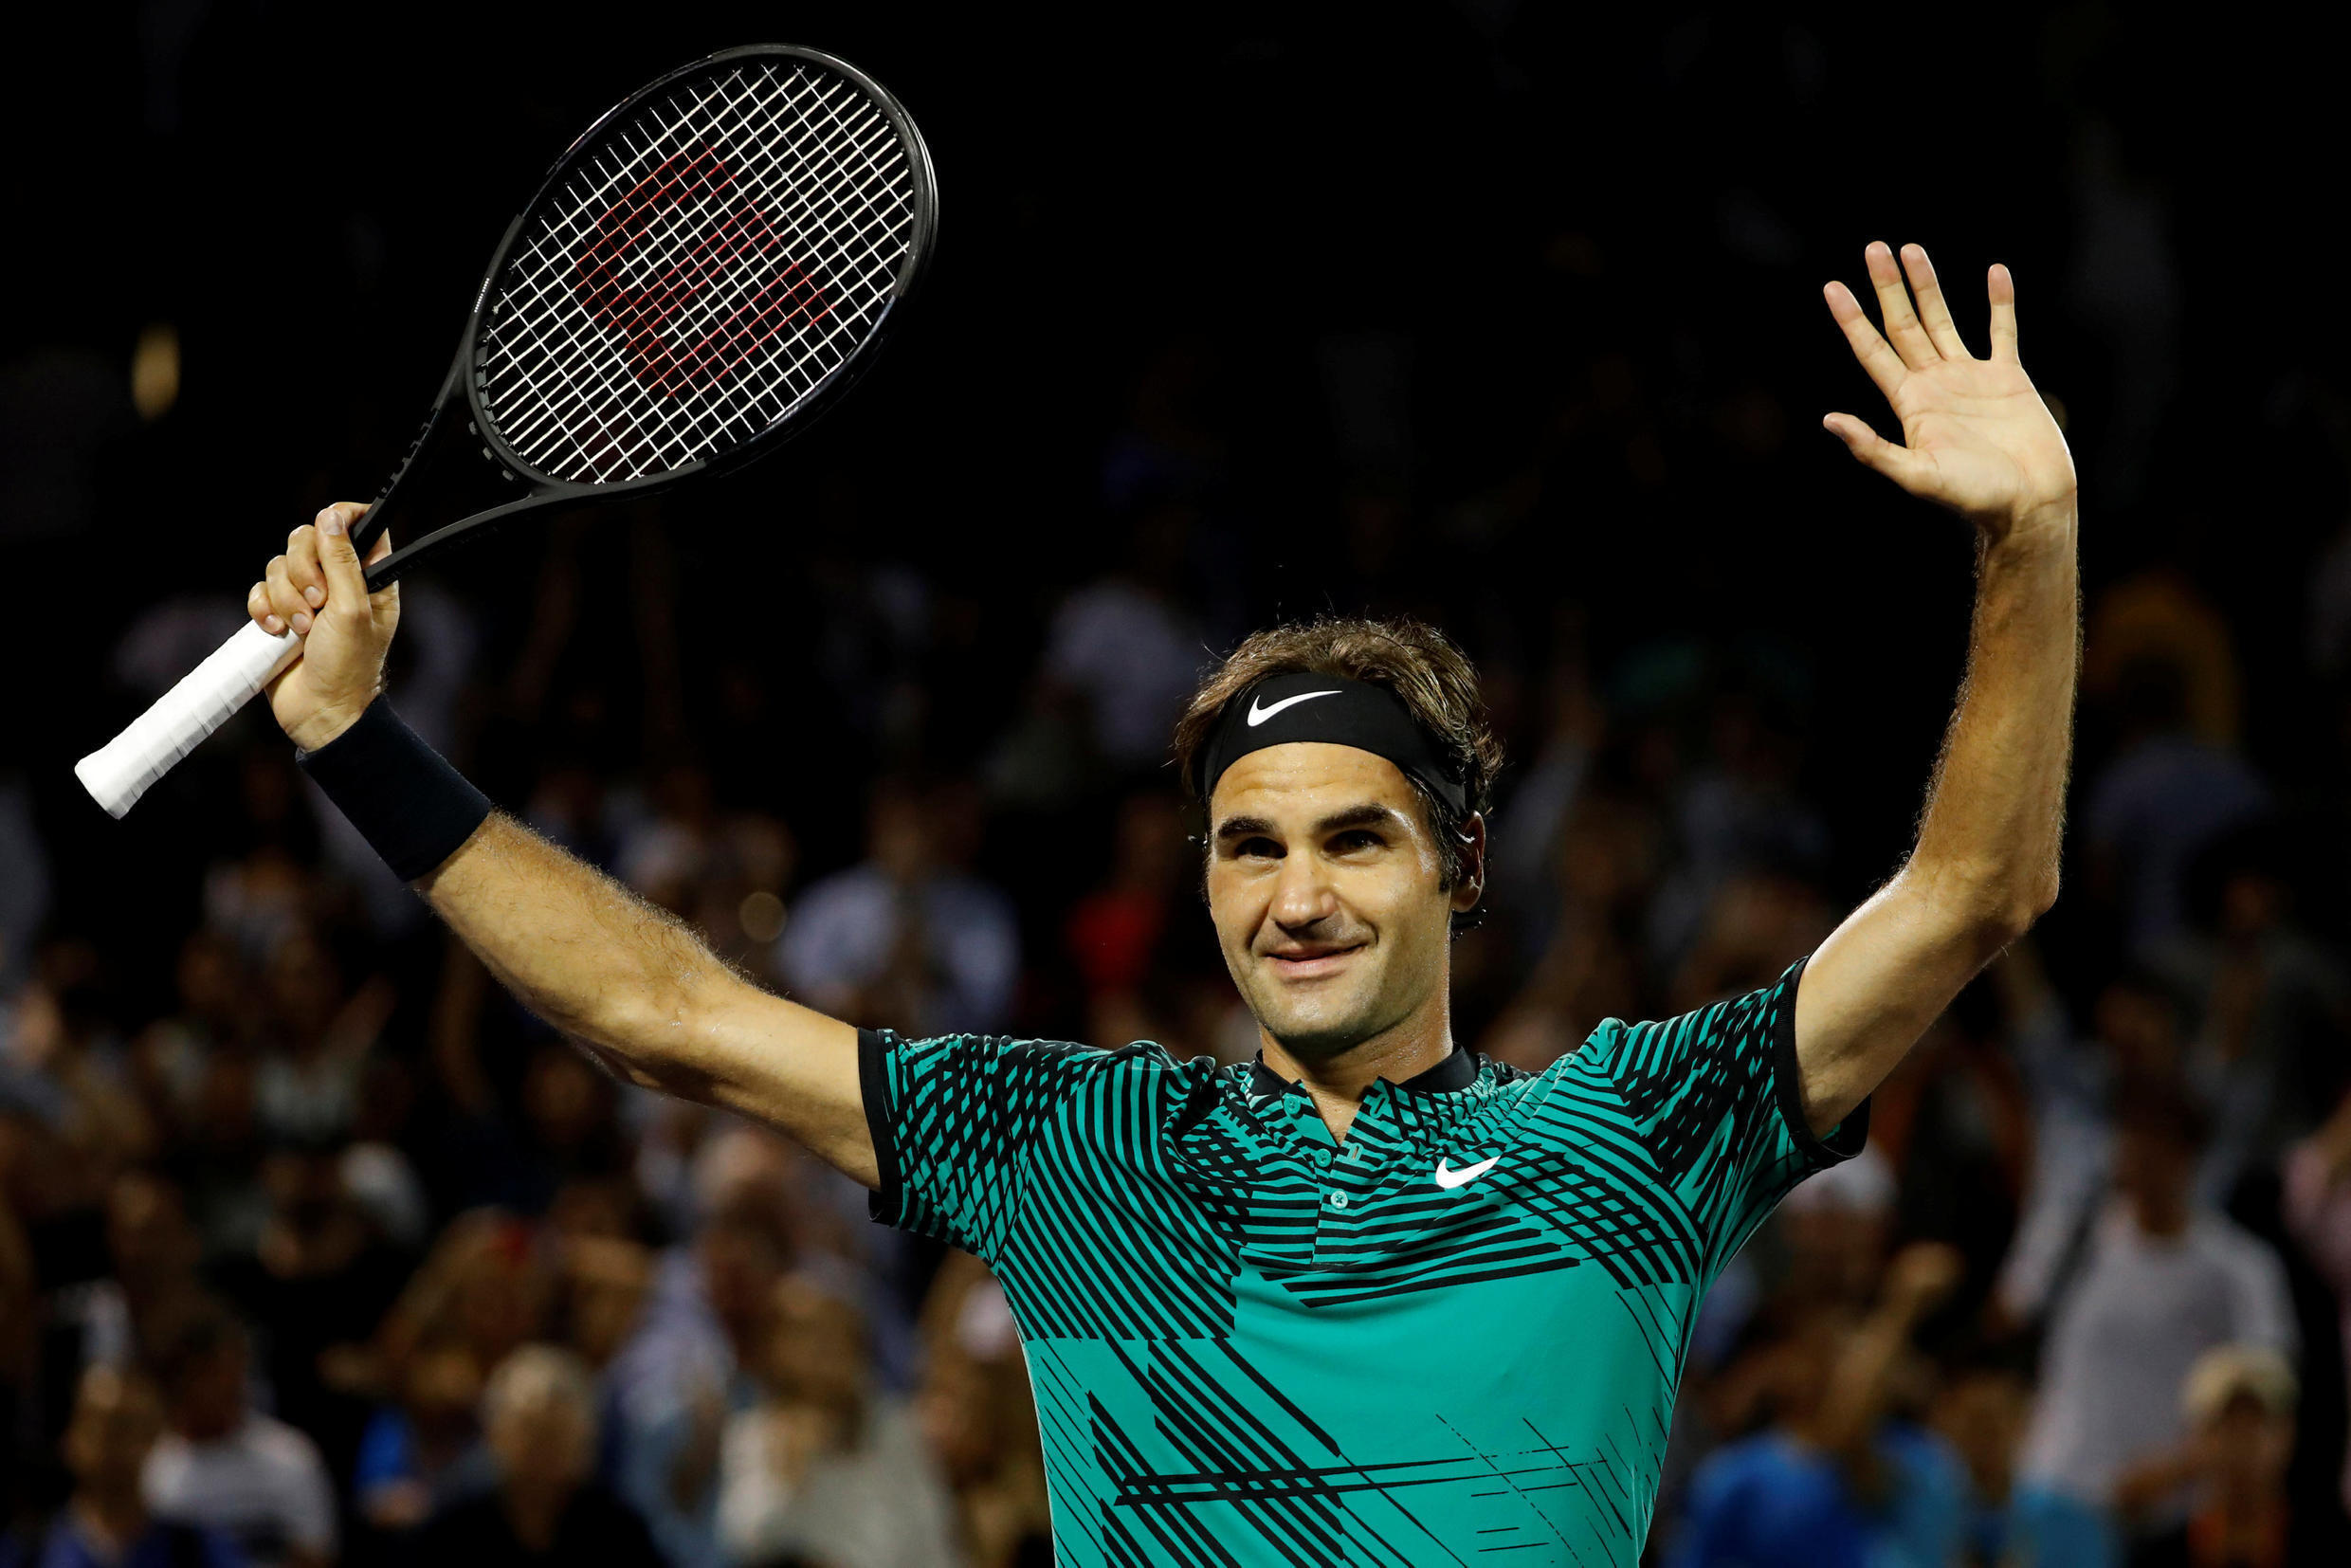 Roger Federer has lost only one match in 2017.